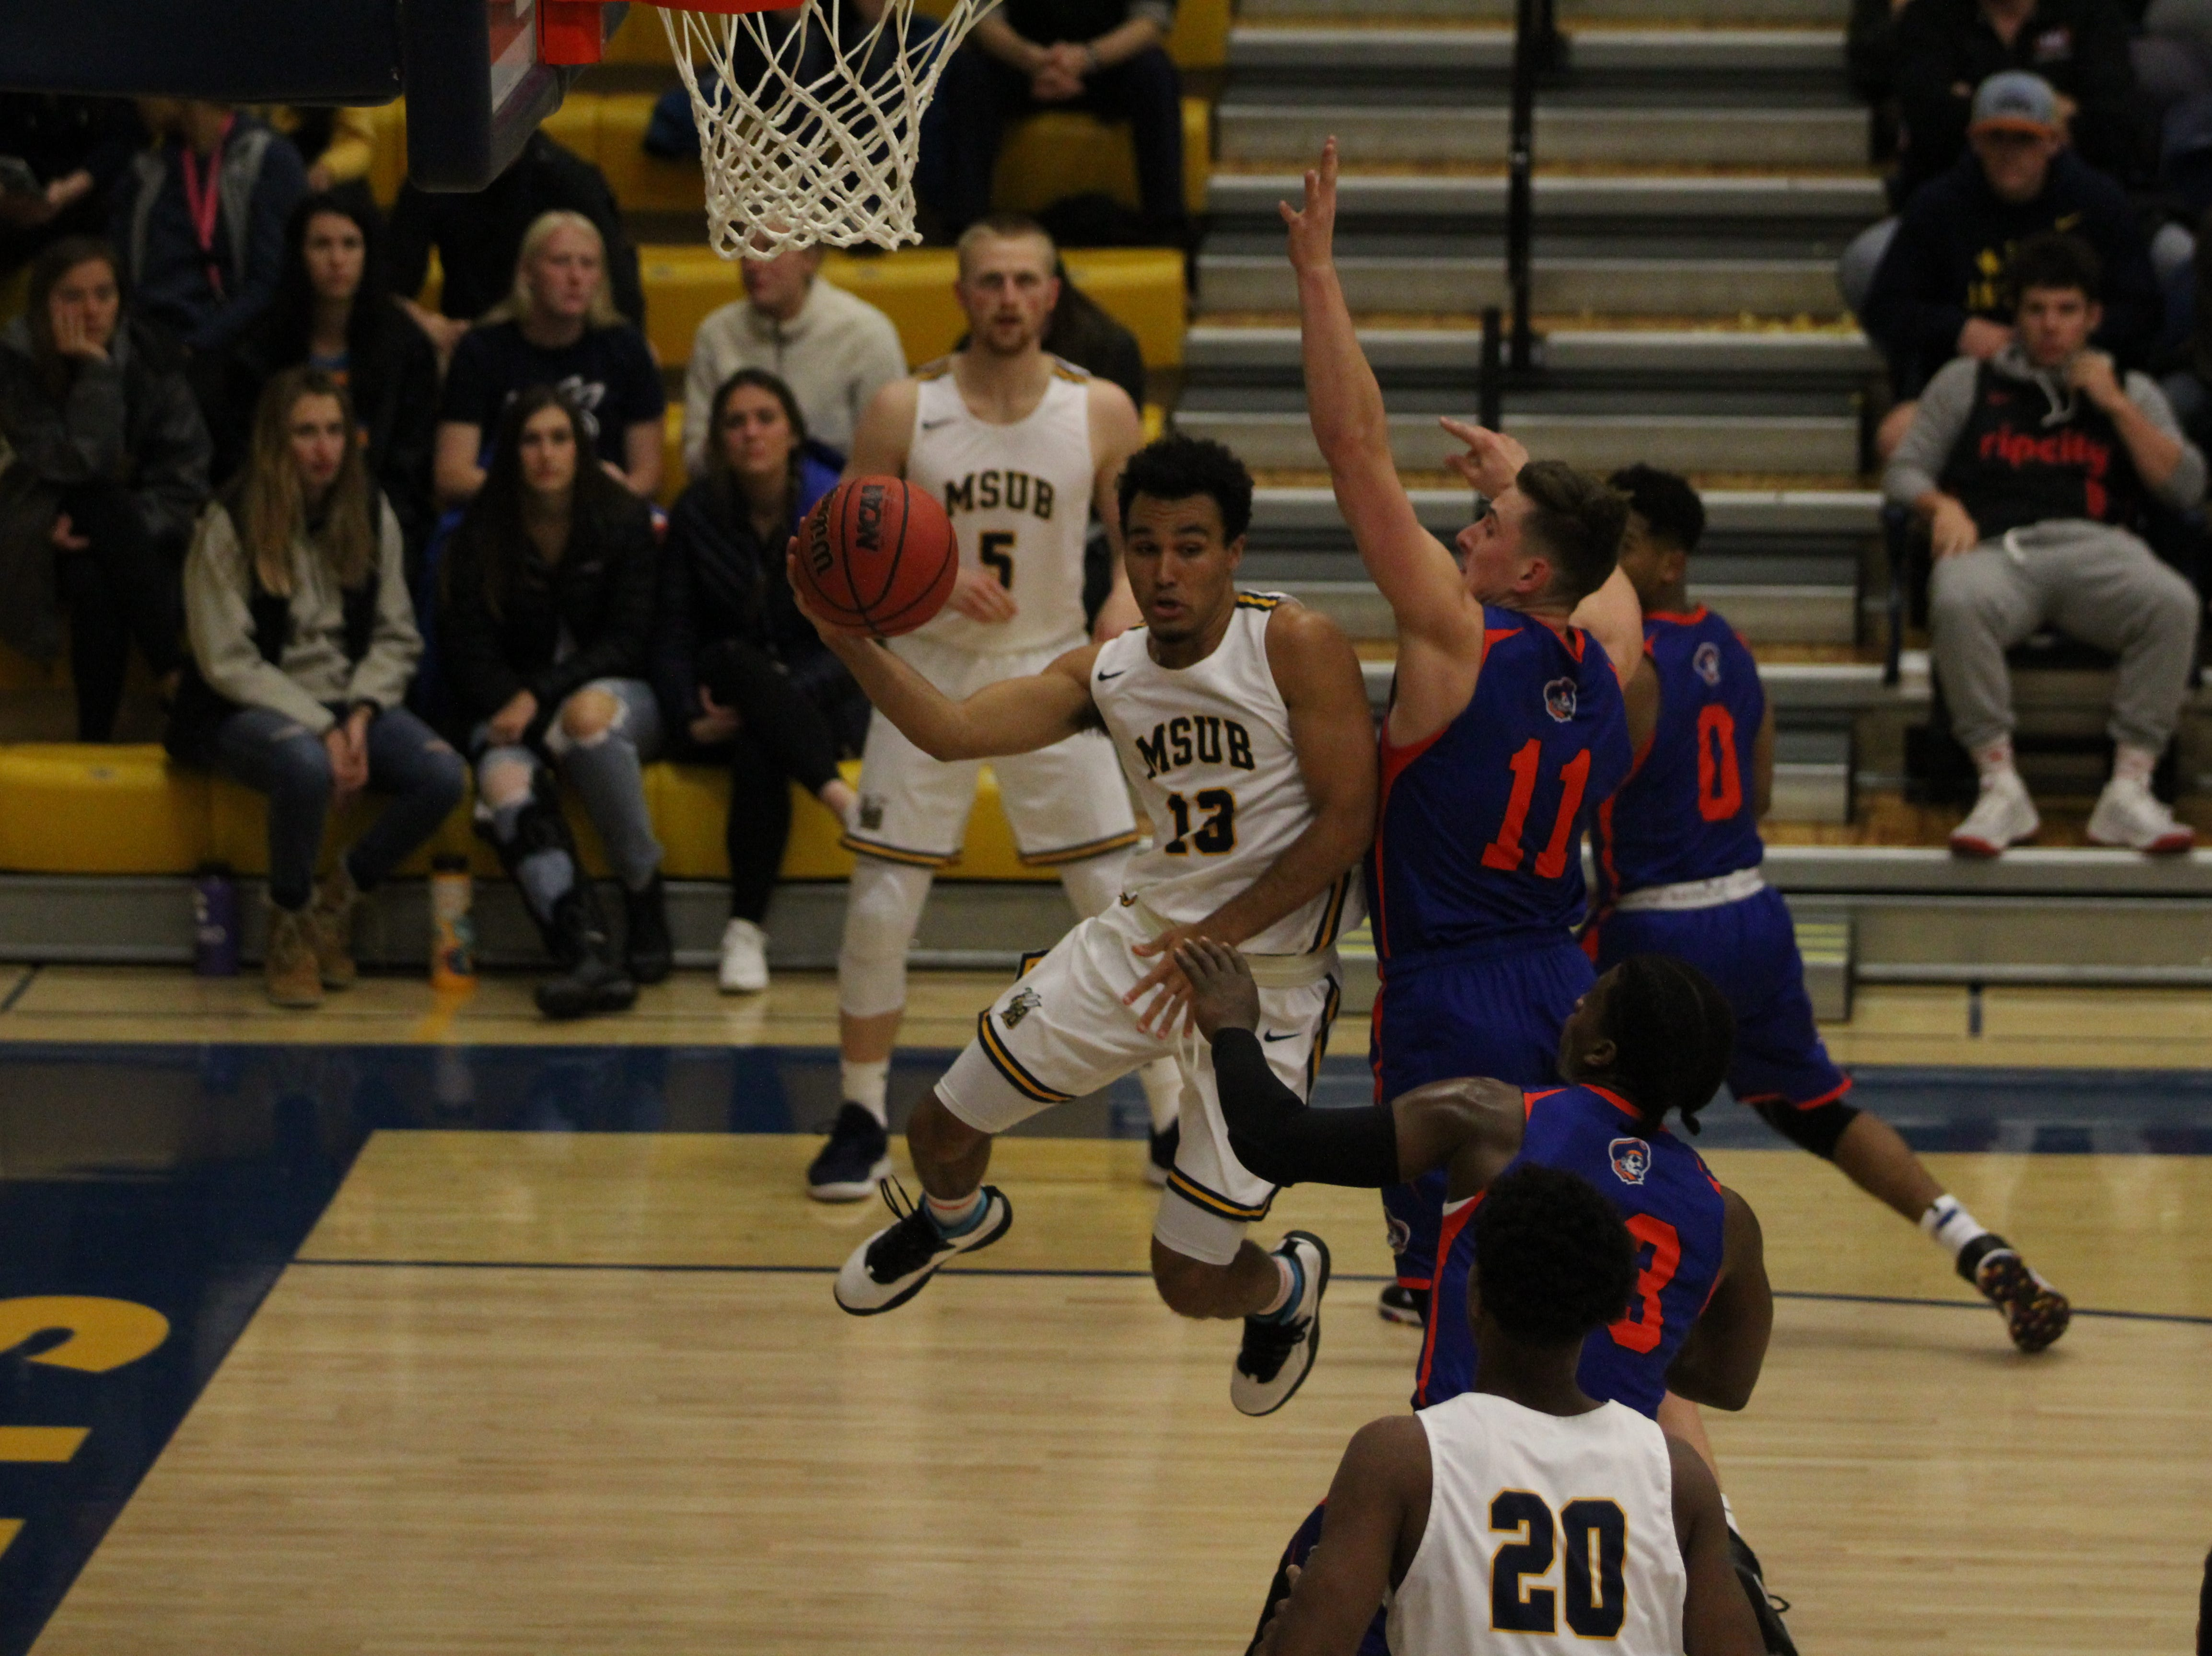 Tyler Green attempts to pass the ball from under the rim.